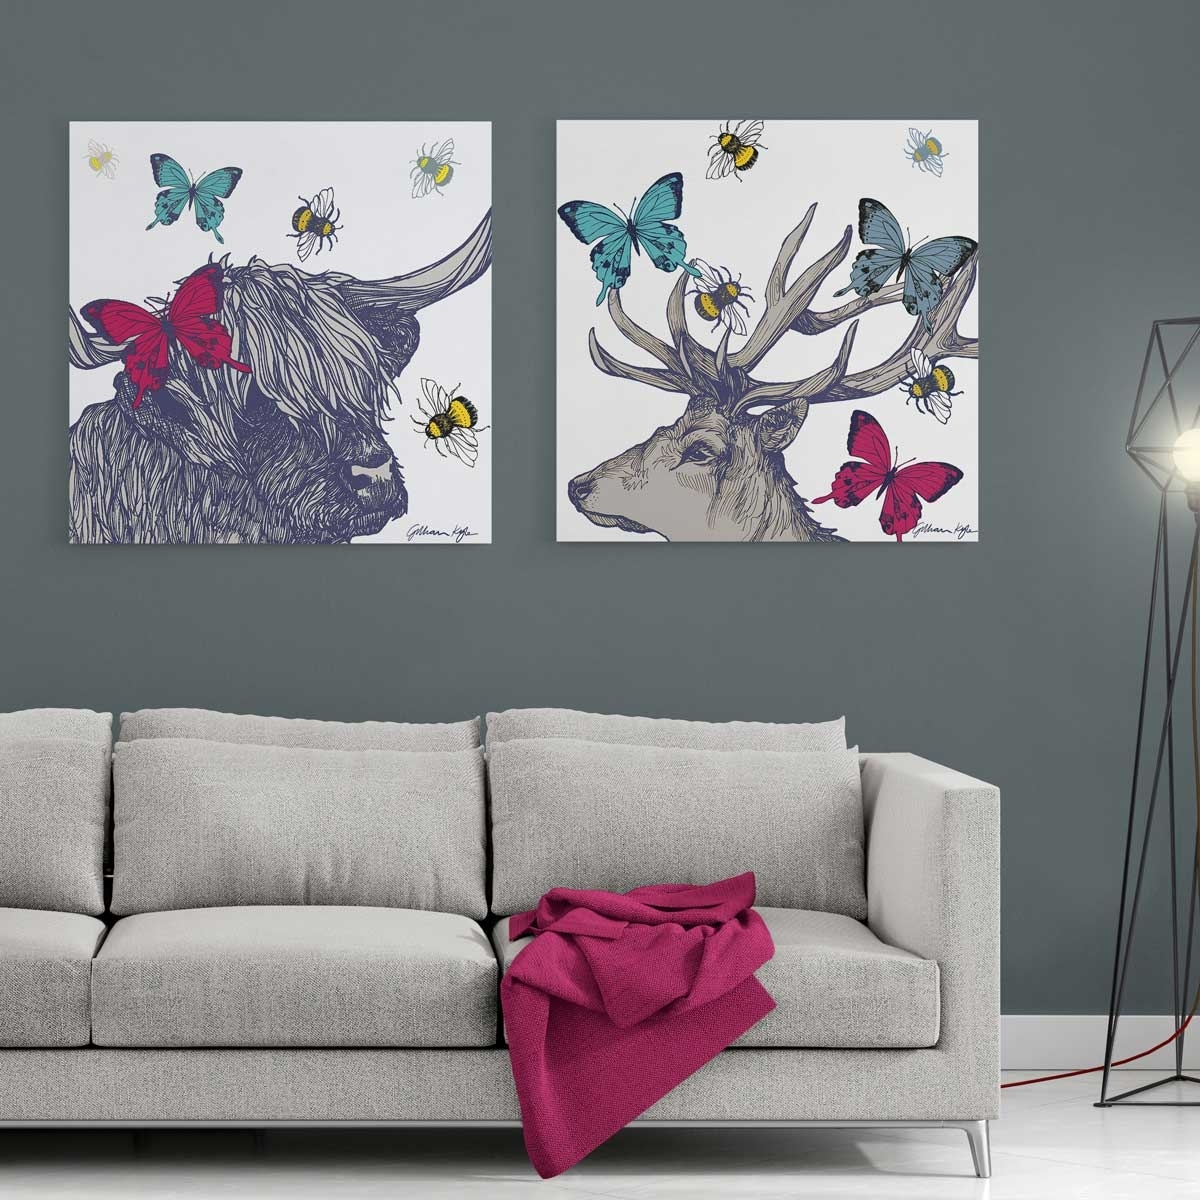 Gillian Kyle Scottish Wall Art Stag And Lola Set Of Two Canvas Prints Inside Latest Canvas Wall Art Pairs (View 3 of 15)